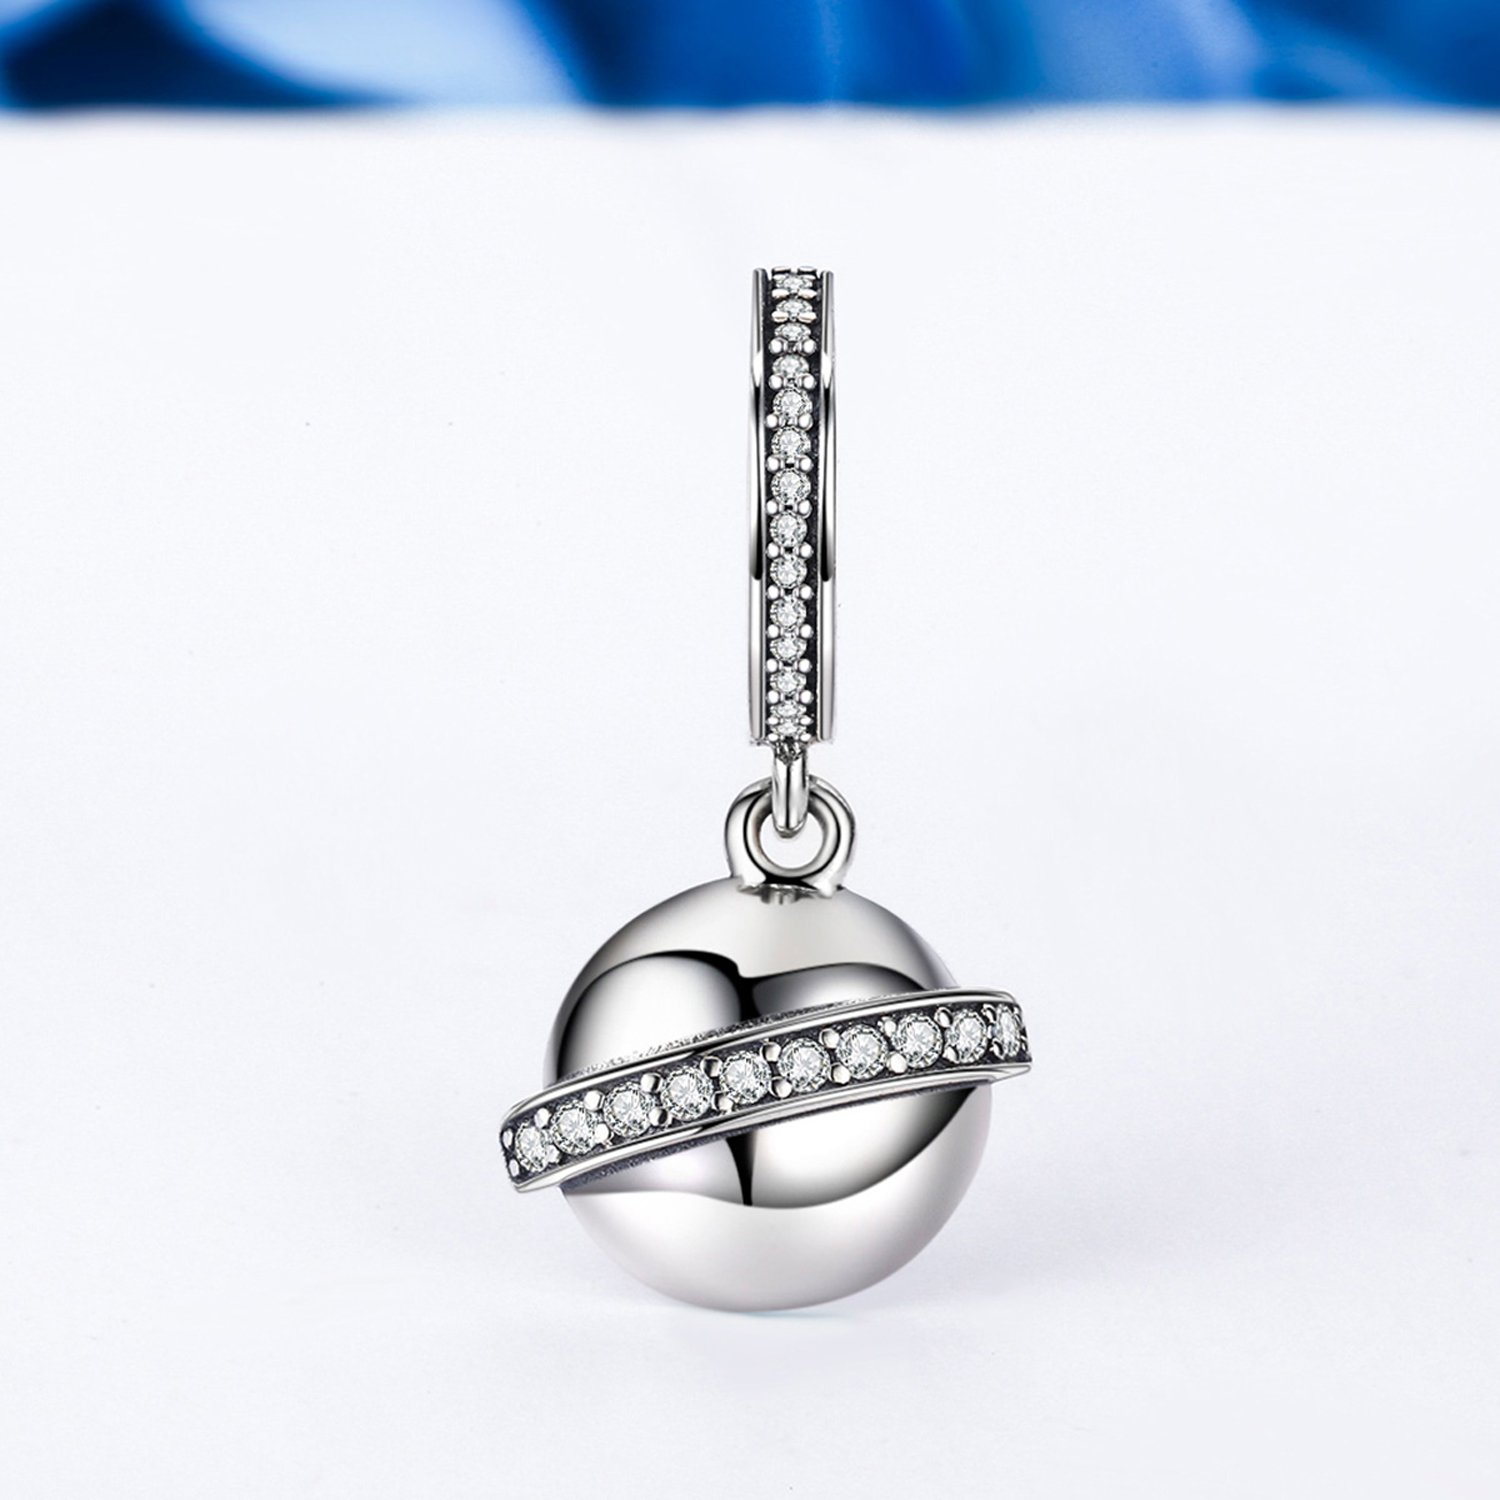 XingYue-Jewelry-925-Sterling-Silver-High-Heeled-Shoes-Dangle-Charms-Clear-CZ-Charms-Fit-Snake-Chain-Bracelet-and-Necklace